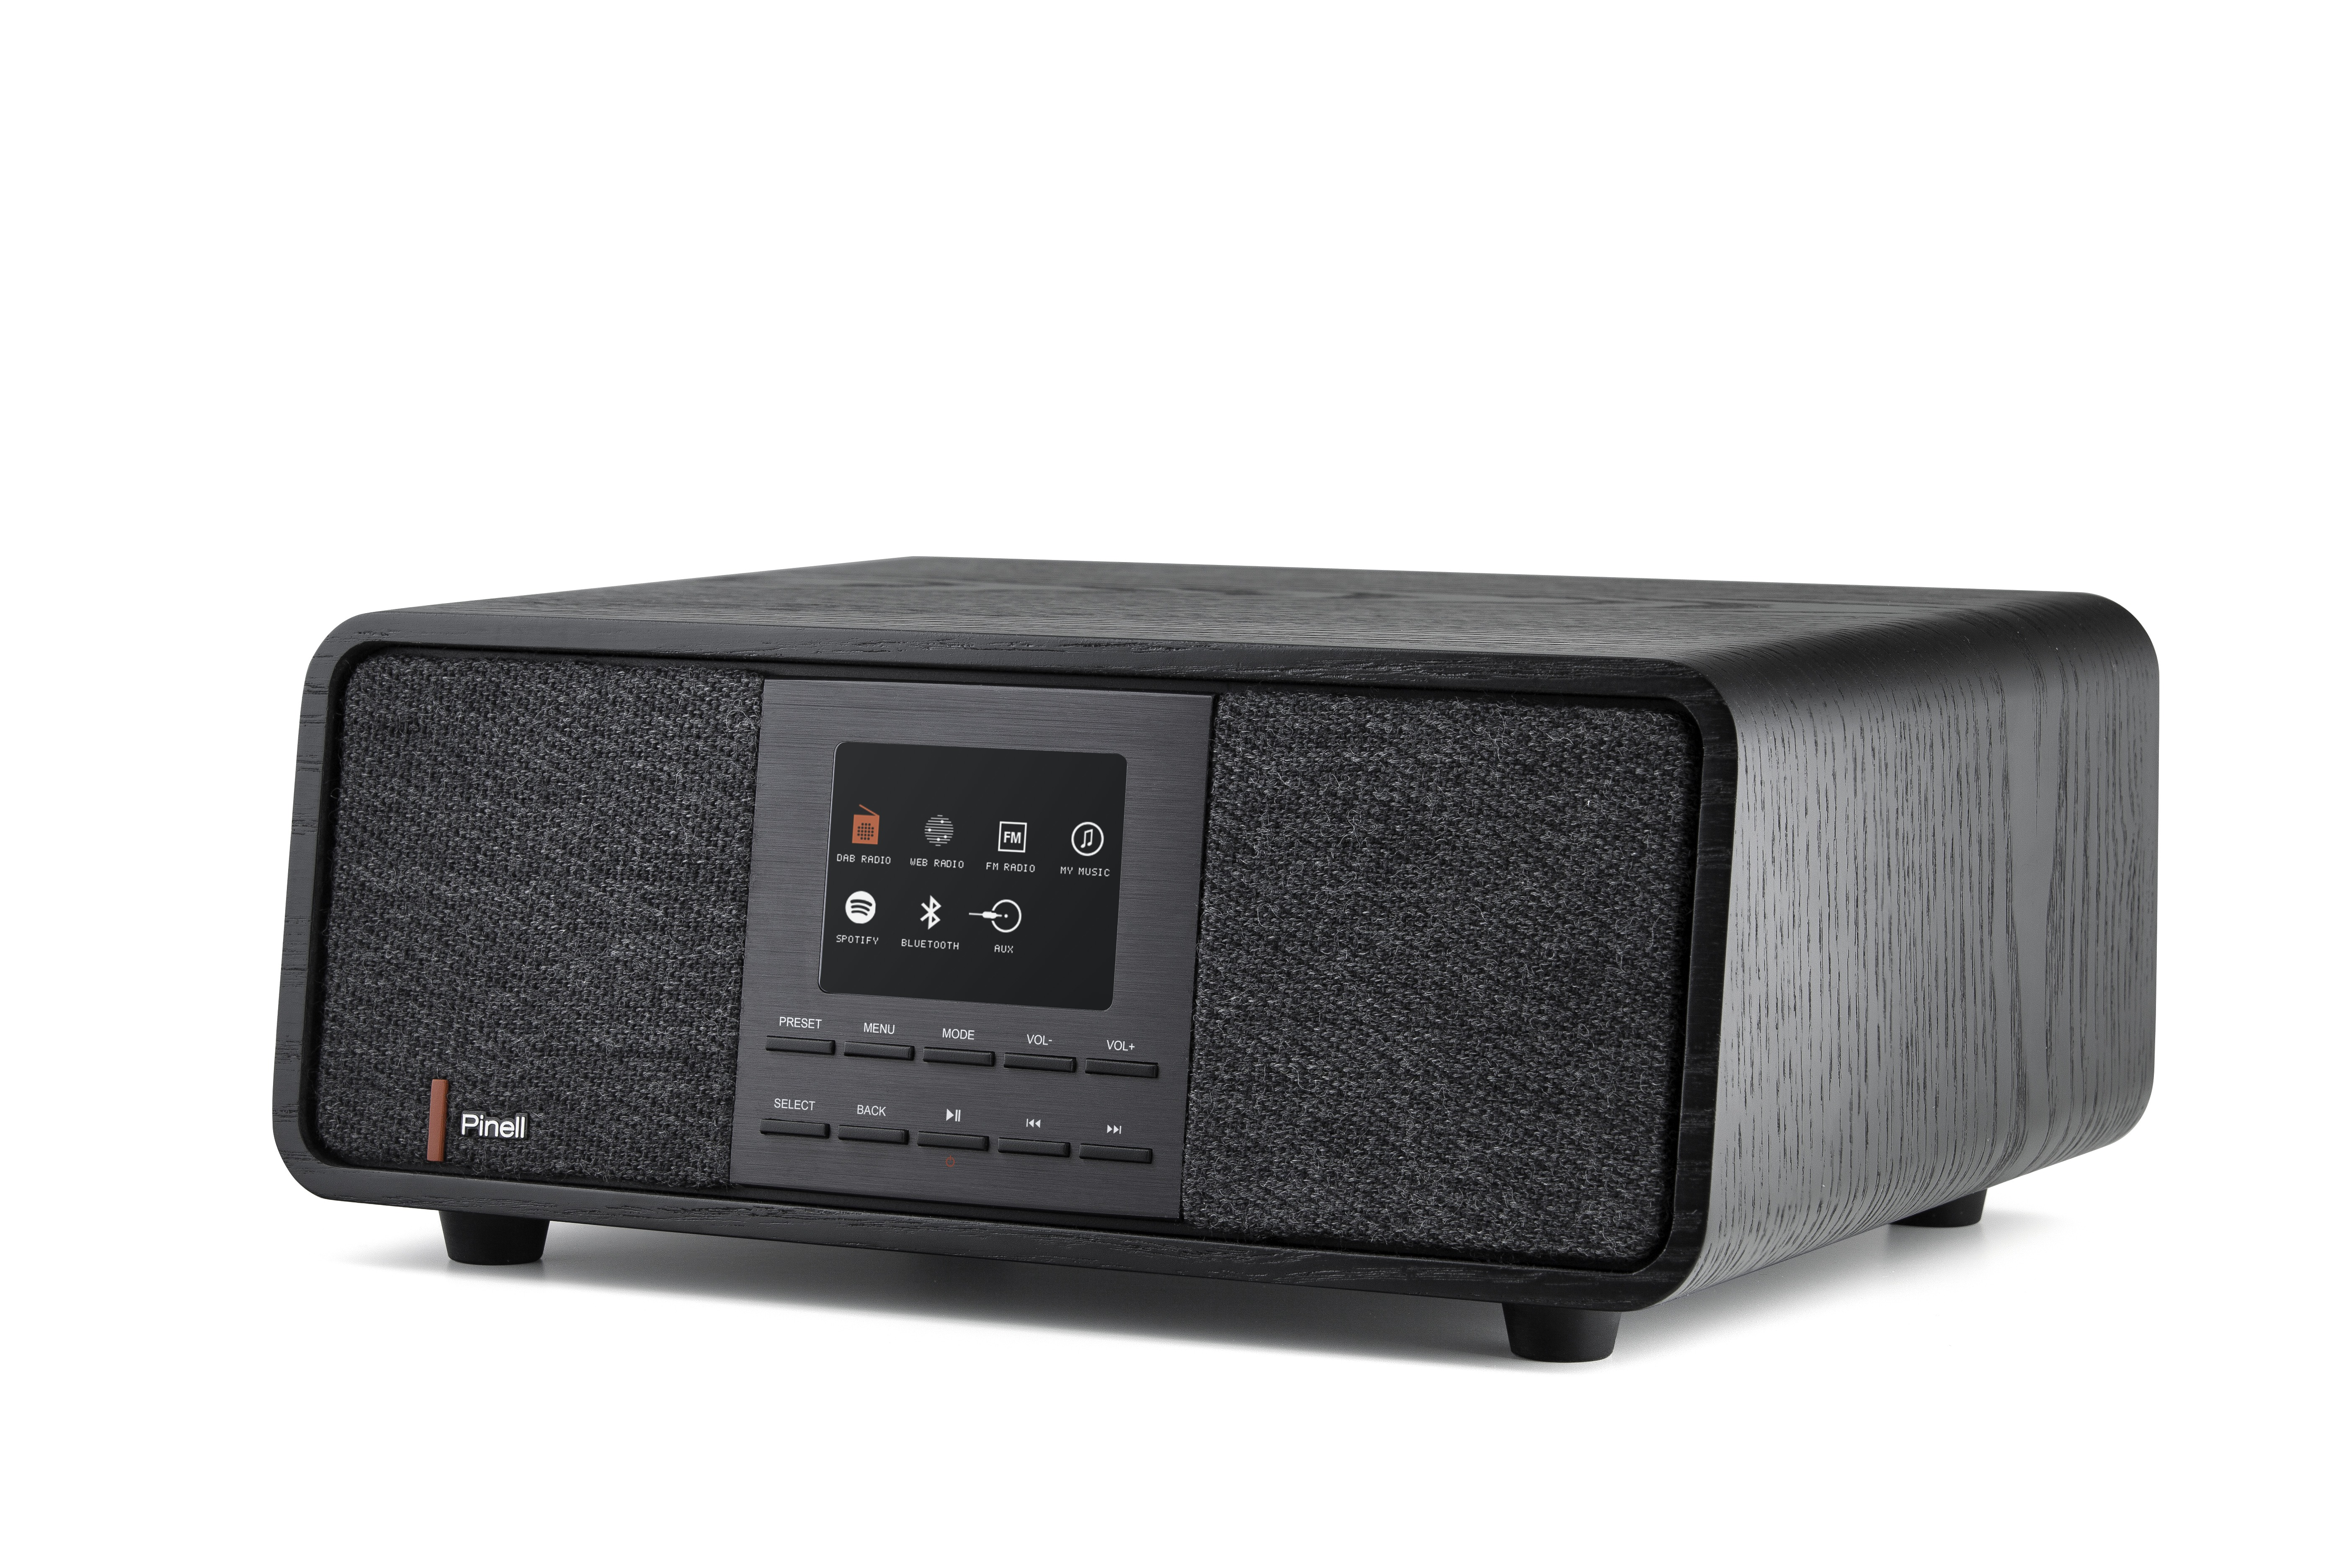 Pinell Supersound 501 dab radio